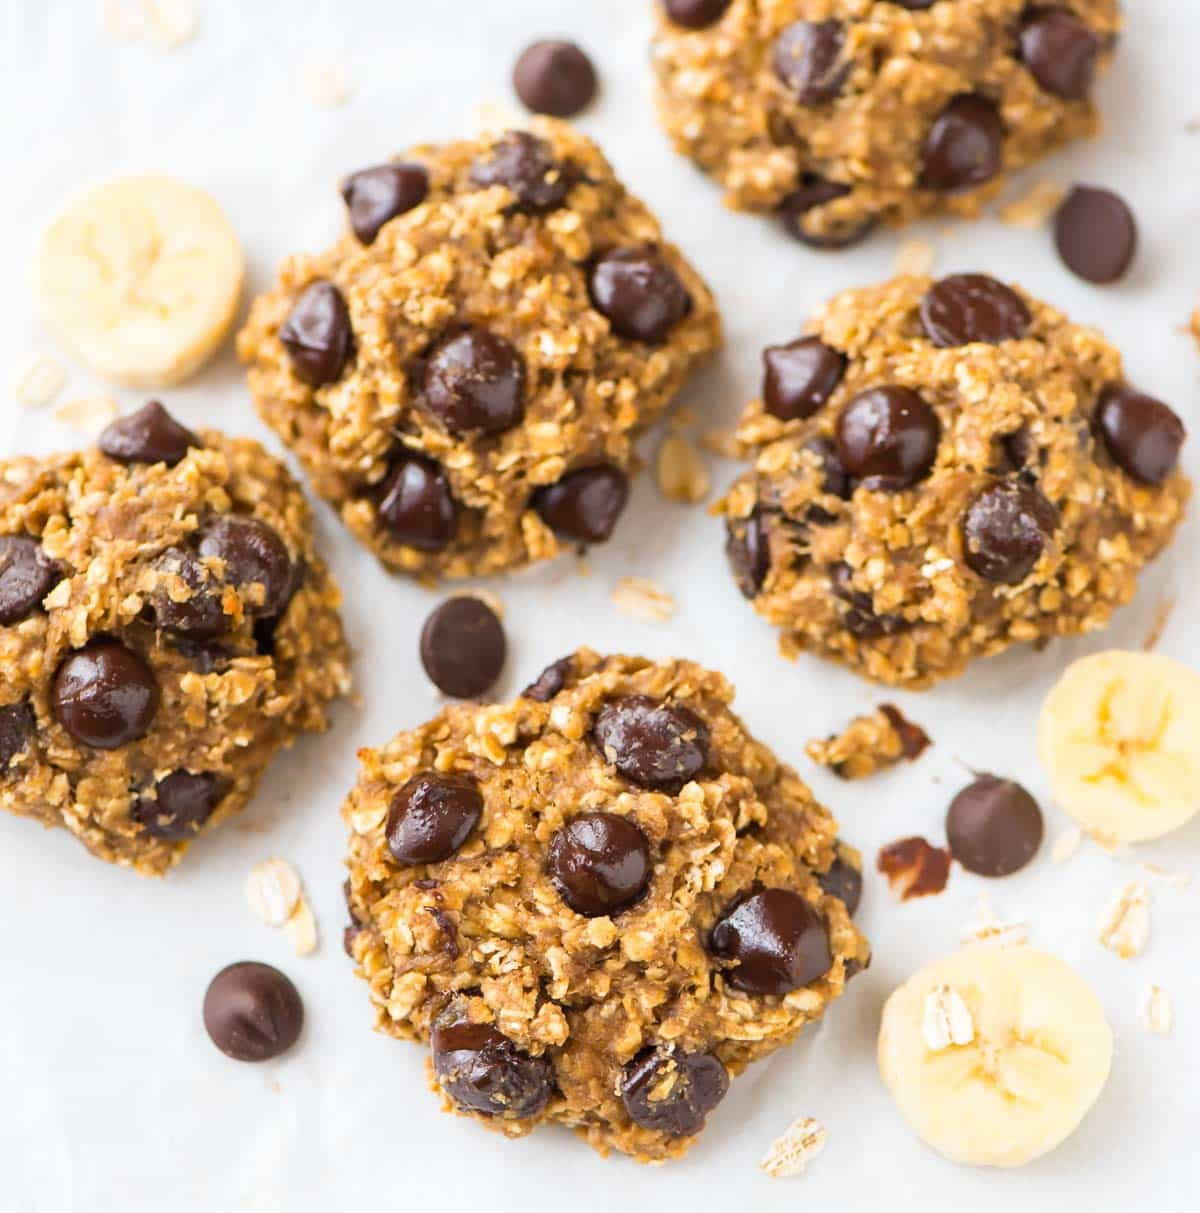 Oatmeal Banana Cookies with Chocolate Chips